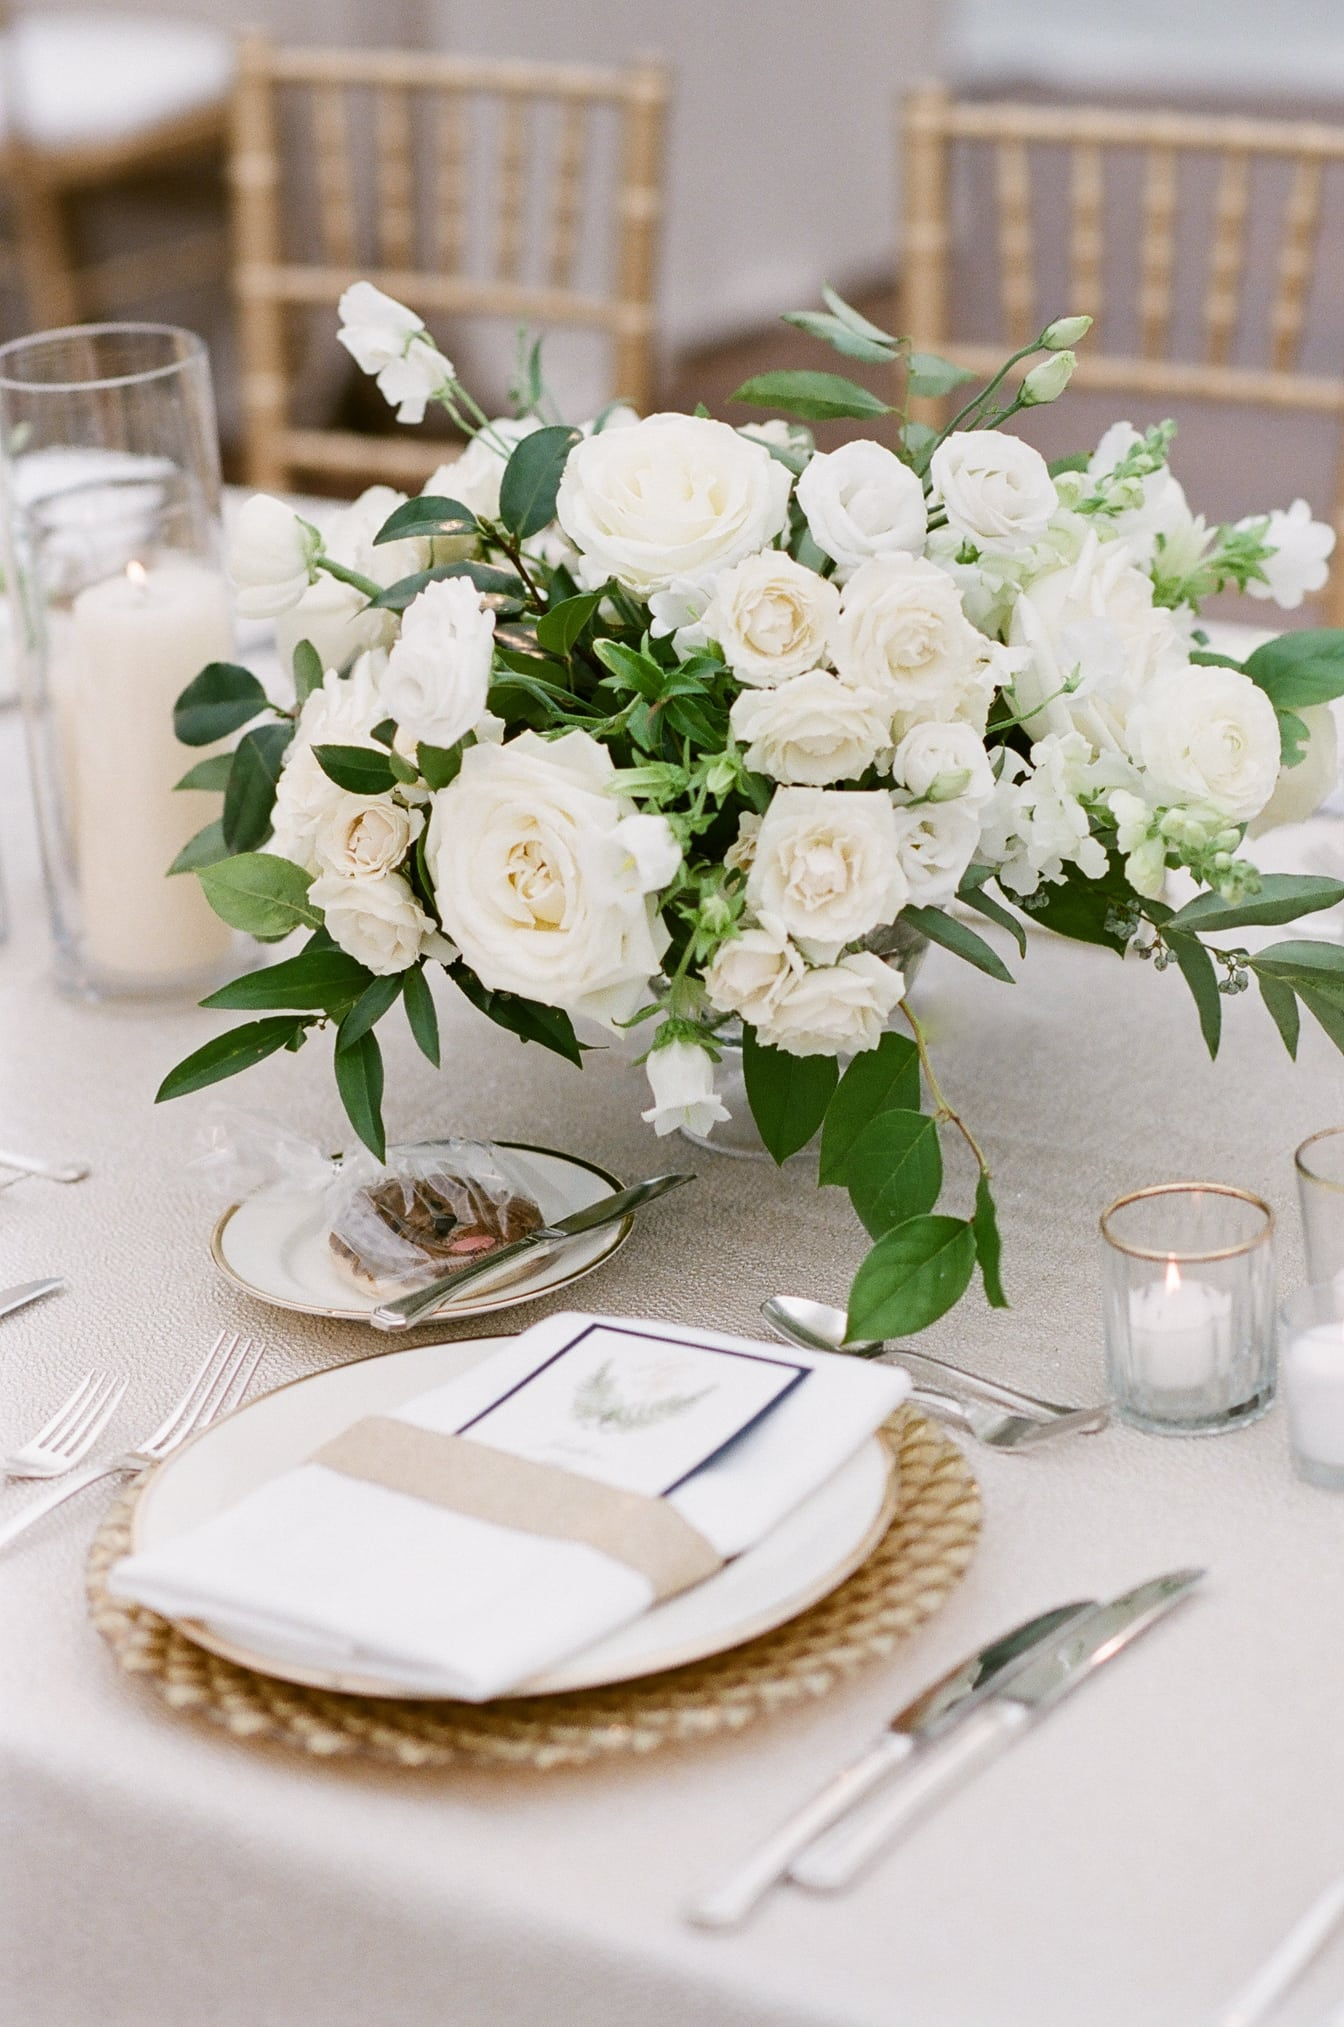 White floral centerpiece by Life in Bloom on table